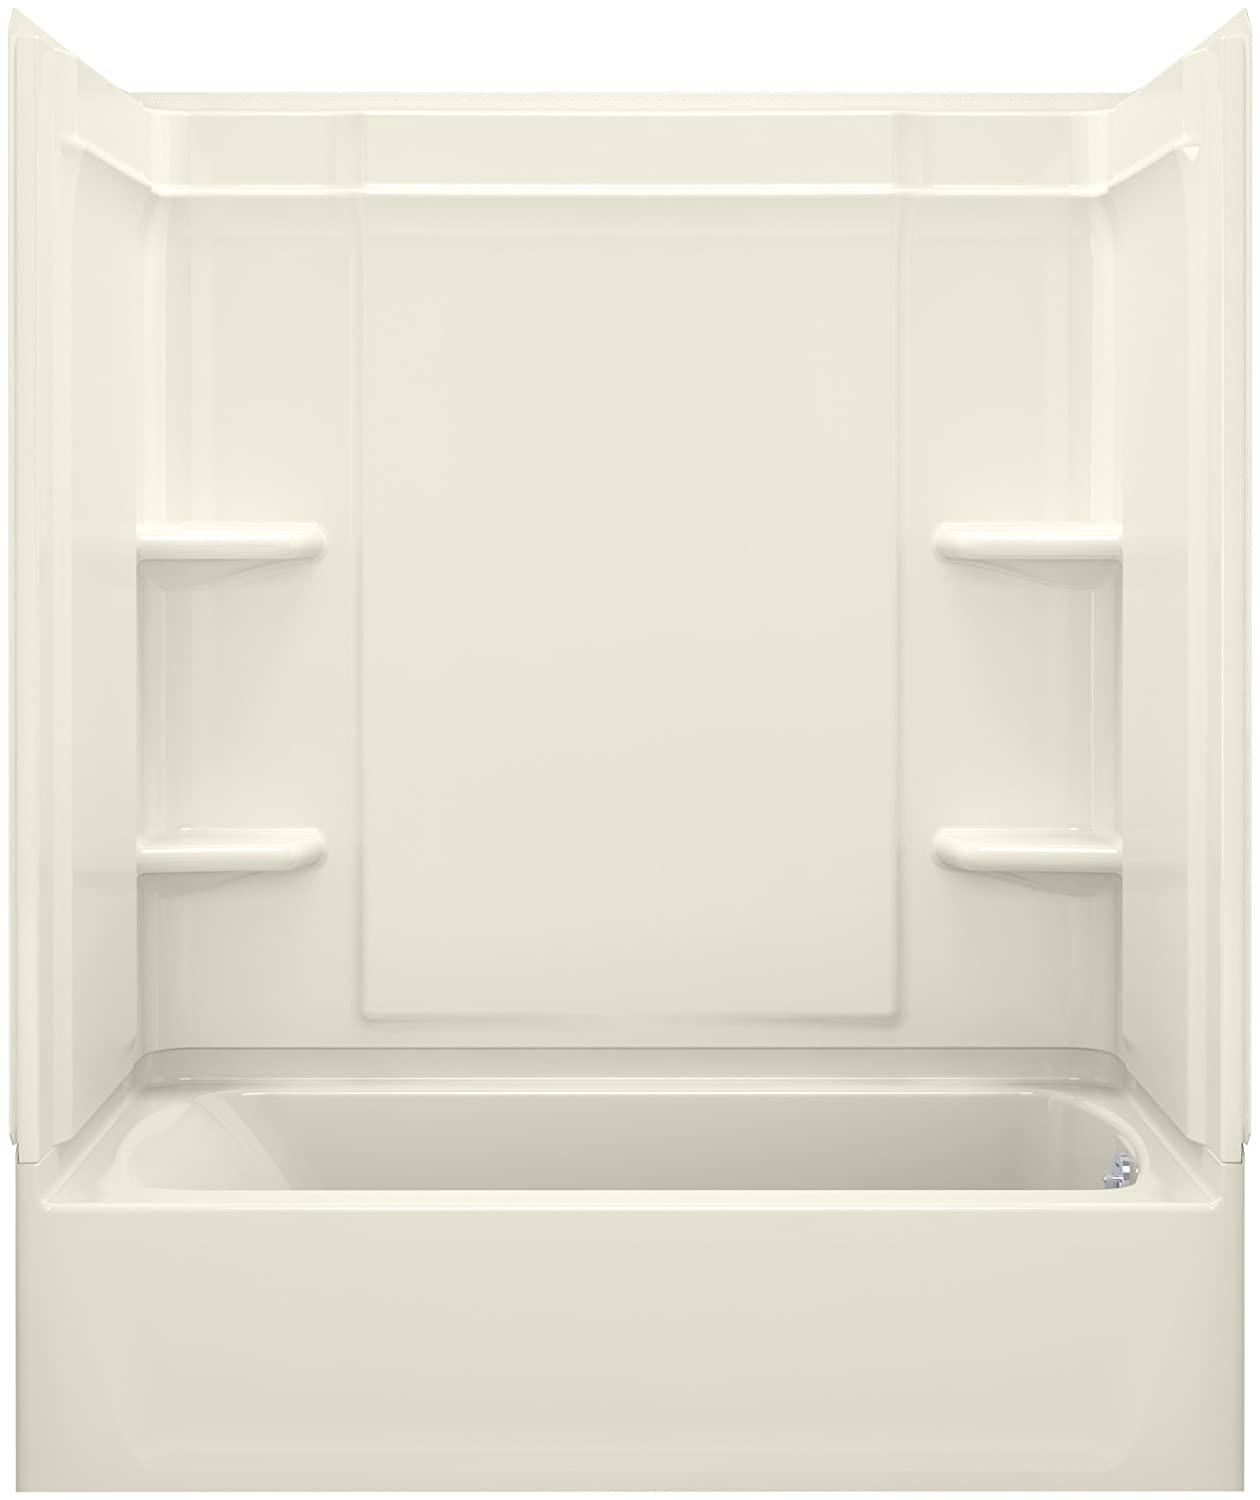 STERLING, a KOHLER Company 71370120-96 Ensemble 31.25-In X 60.25-In X 73-In Bathtub And Shower Kit with Right Hand Drain, Biscuit